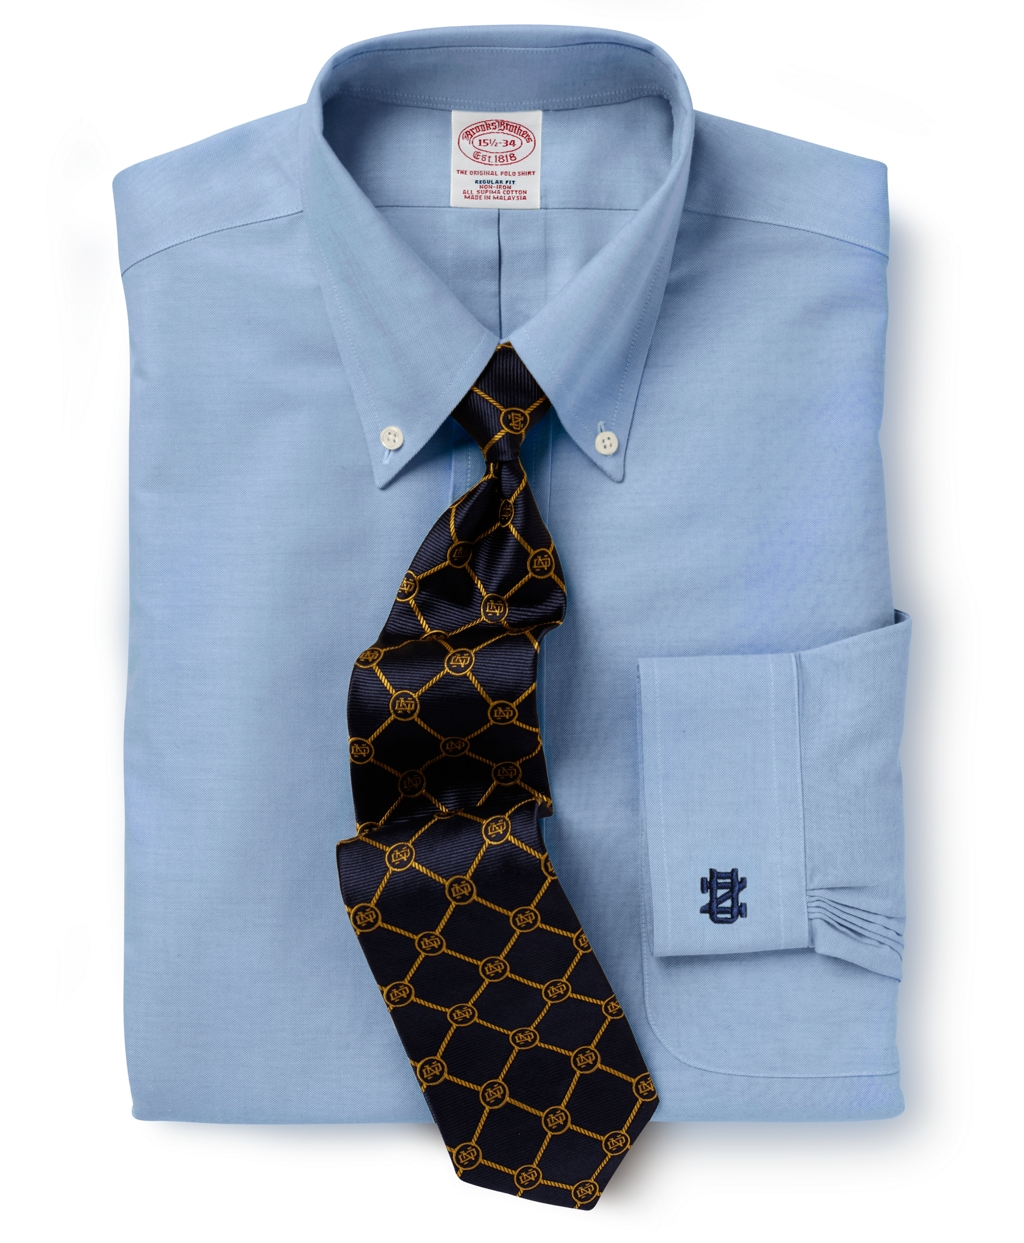 Brooks brothers regular fit dress shirt in blue for men lyst Brooks brothers shirt size guide